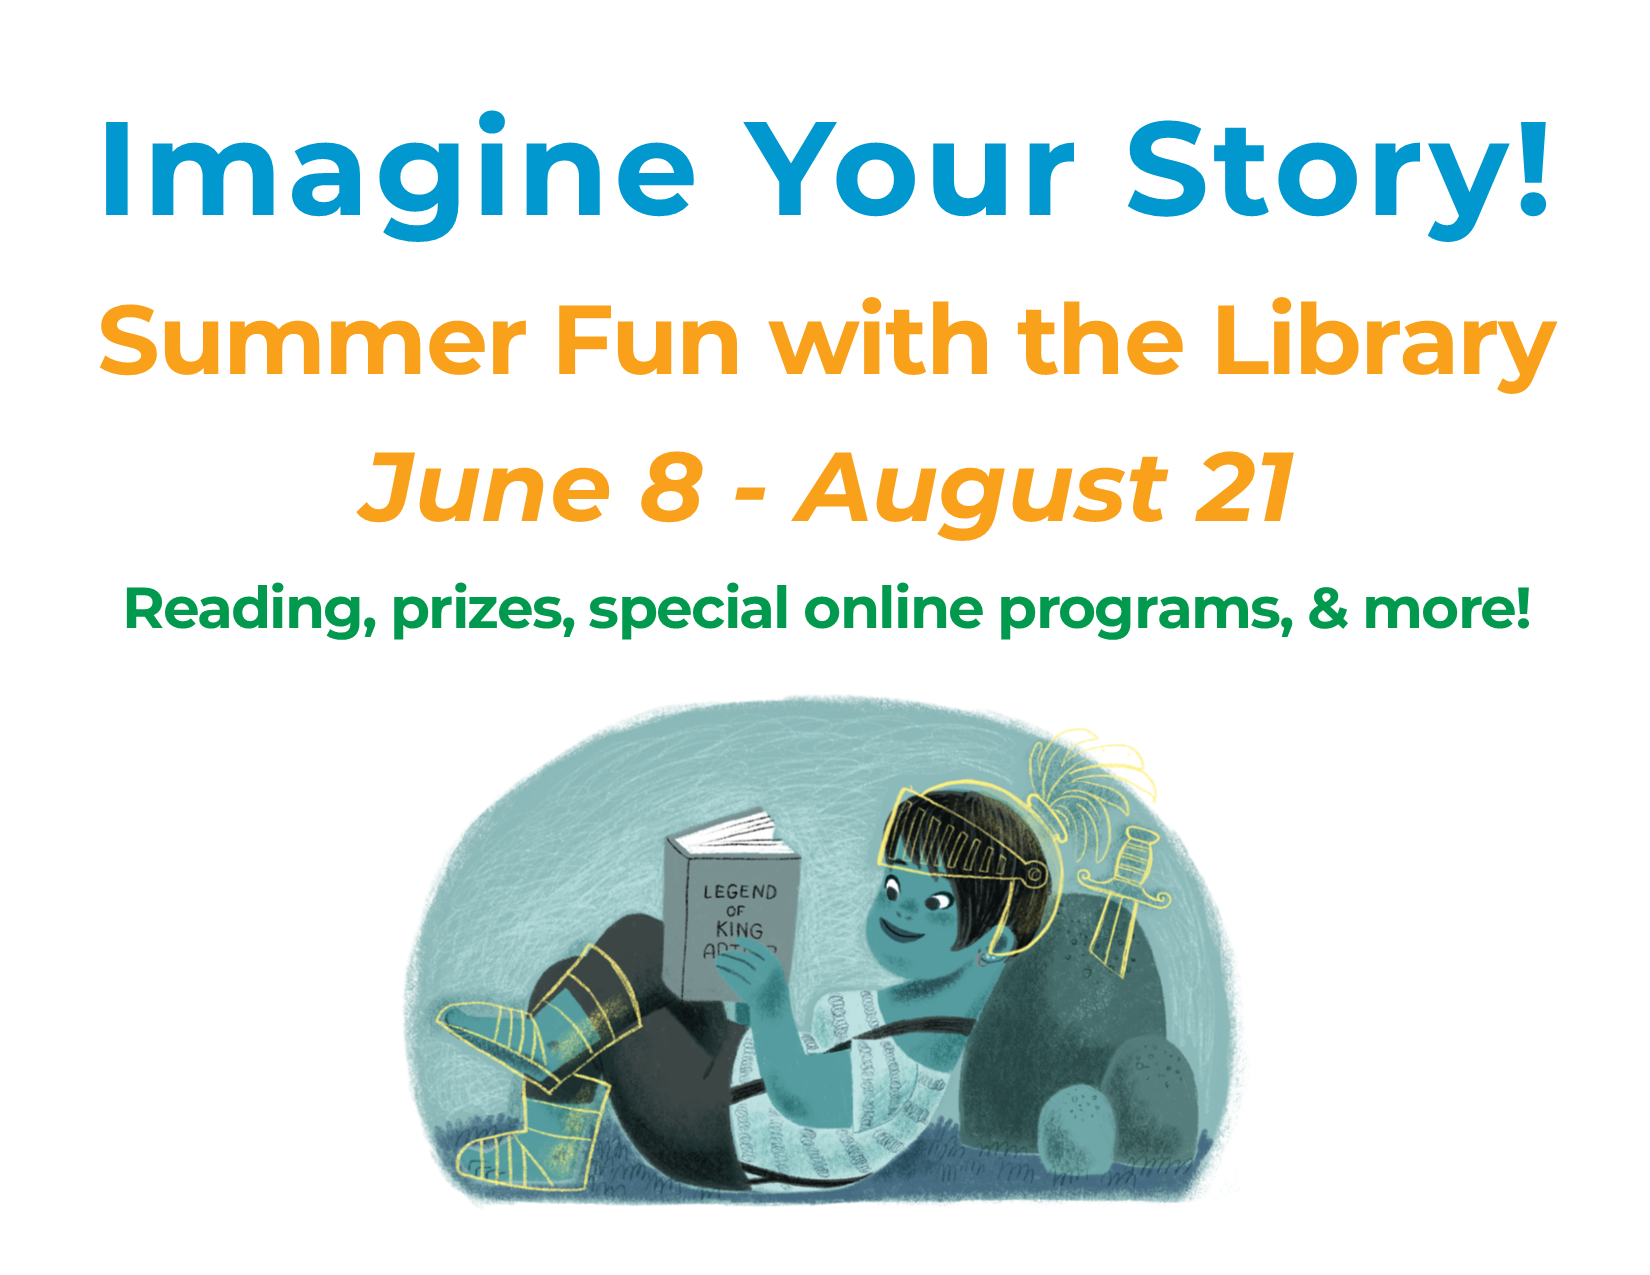 Summer fun with the library! June 8 - August 21. Reading, prizes, special online programs, and more!